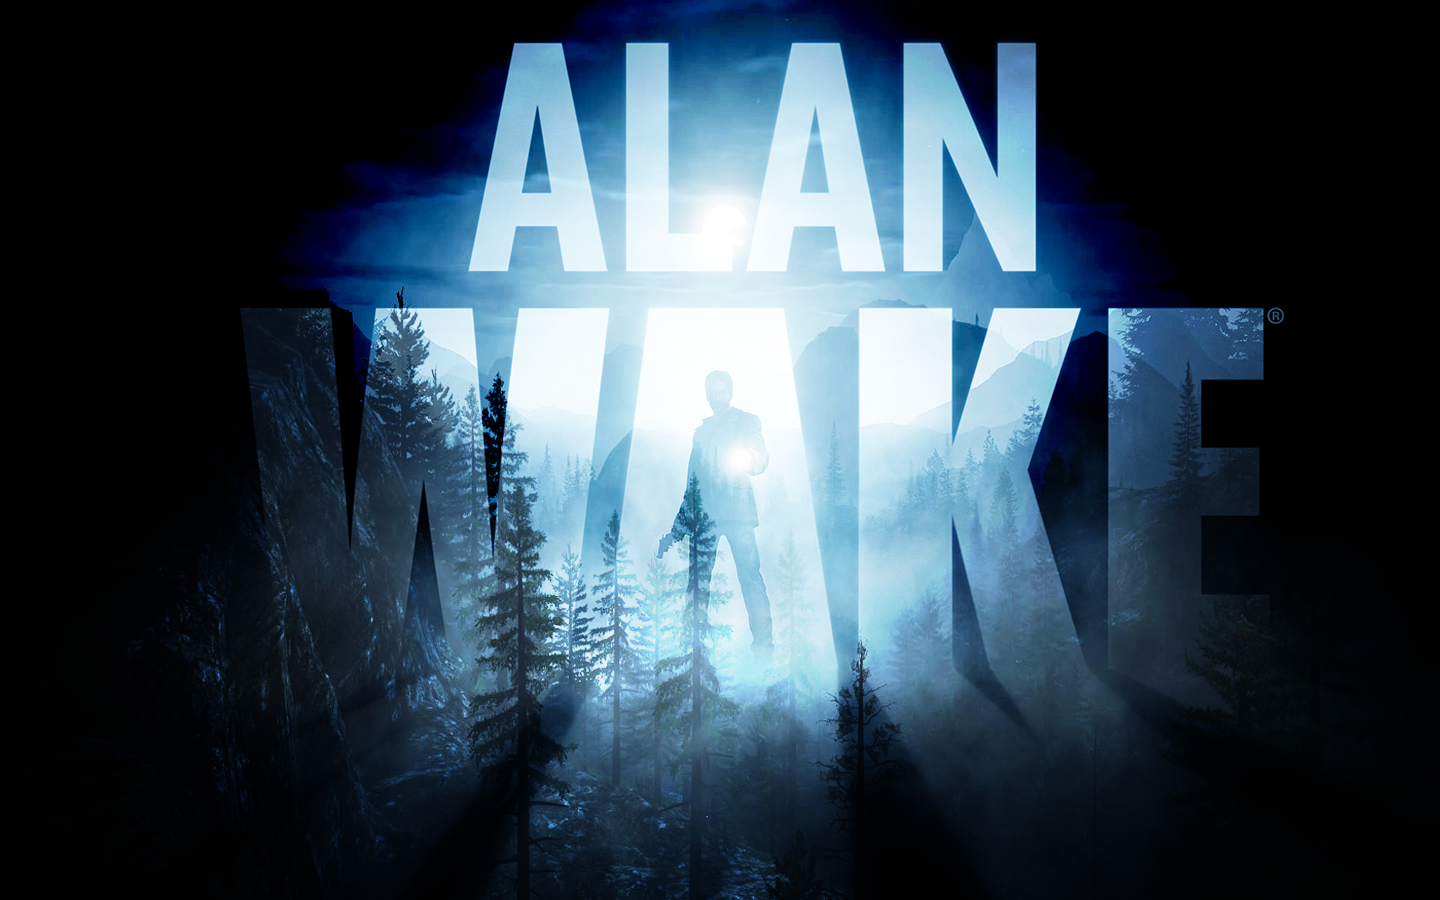 Alan_Wake_wallpaper_by_Louie82Y.png